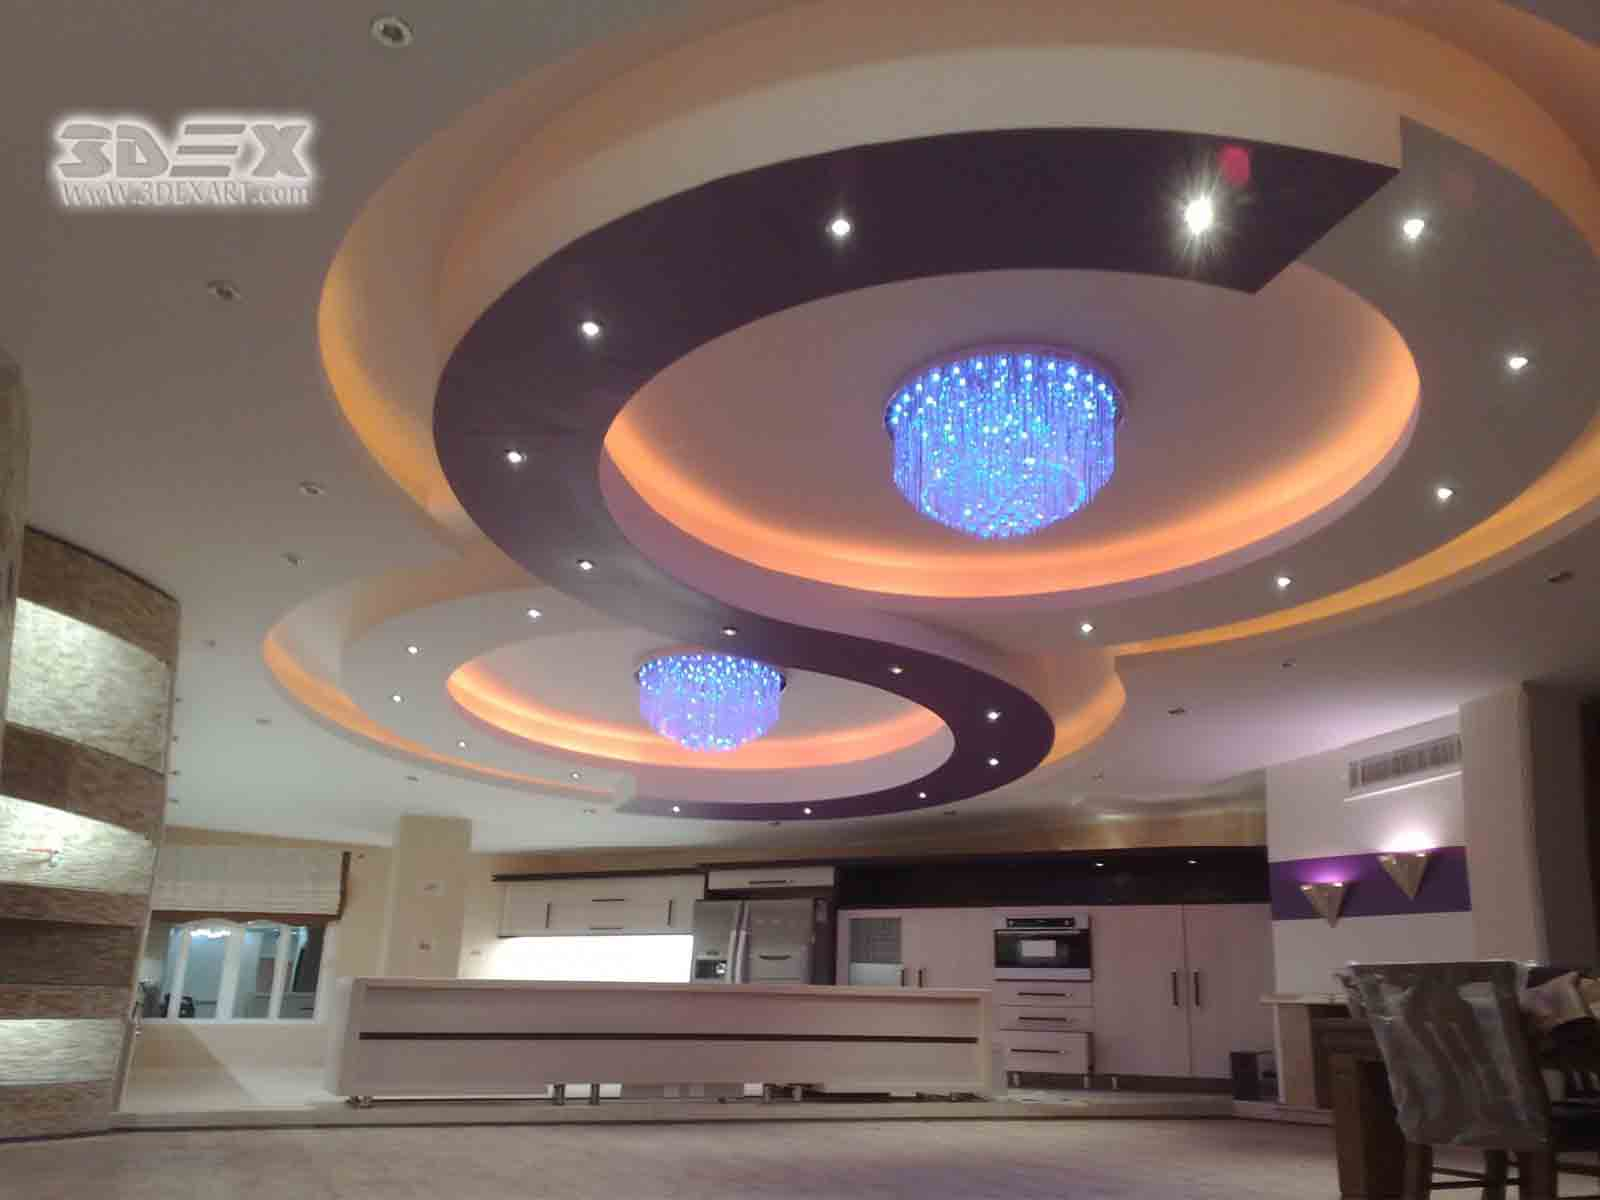 Ceiling Pop Design For Hall